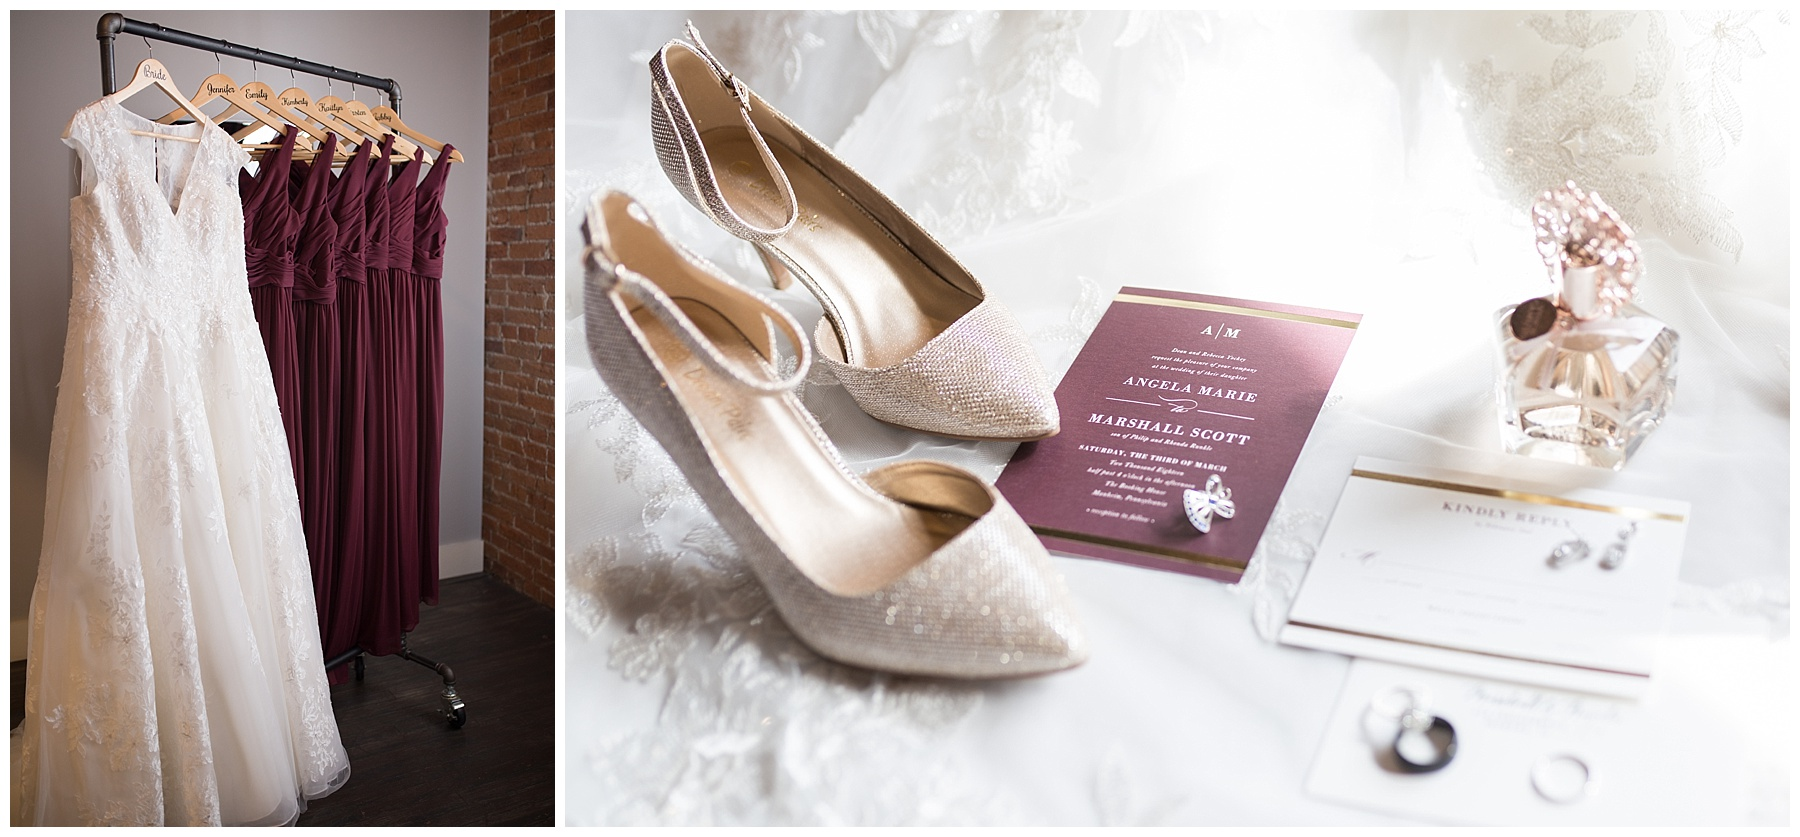 Check out Angela and Marshall's stunning Central PA wedding  here!